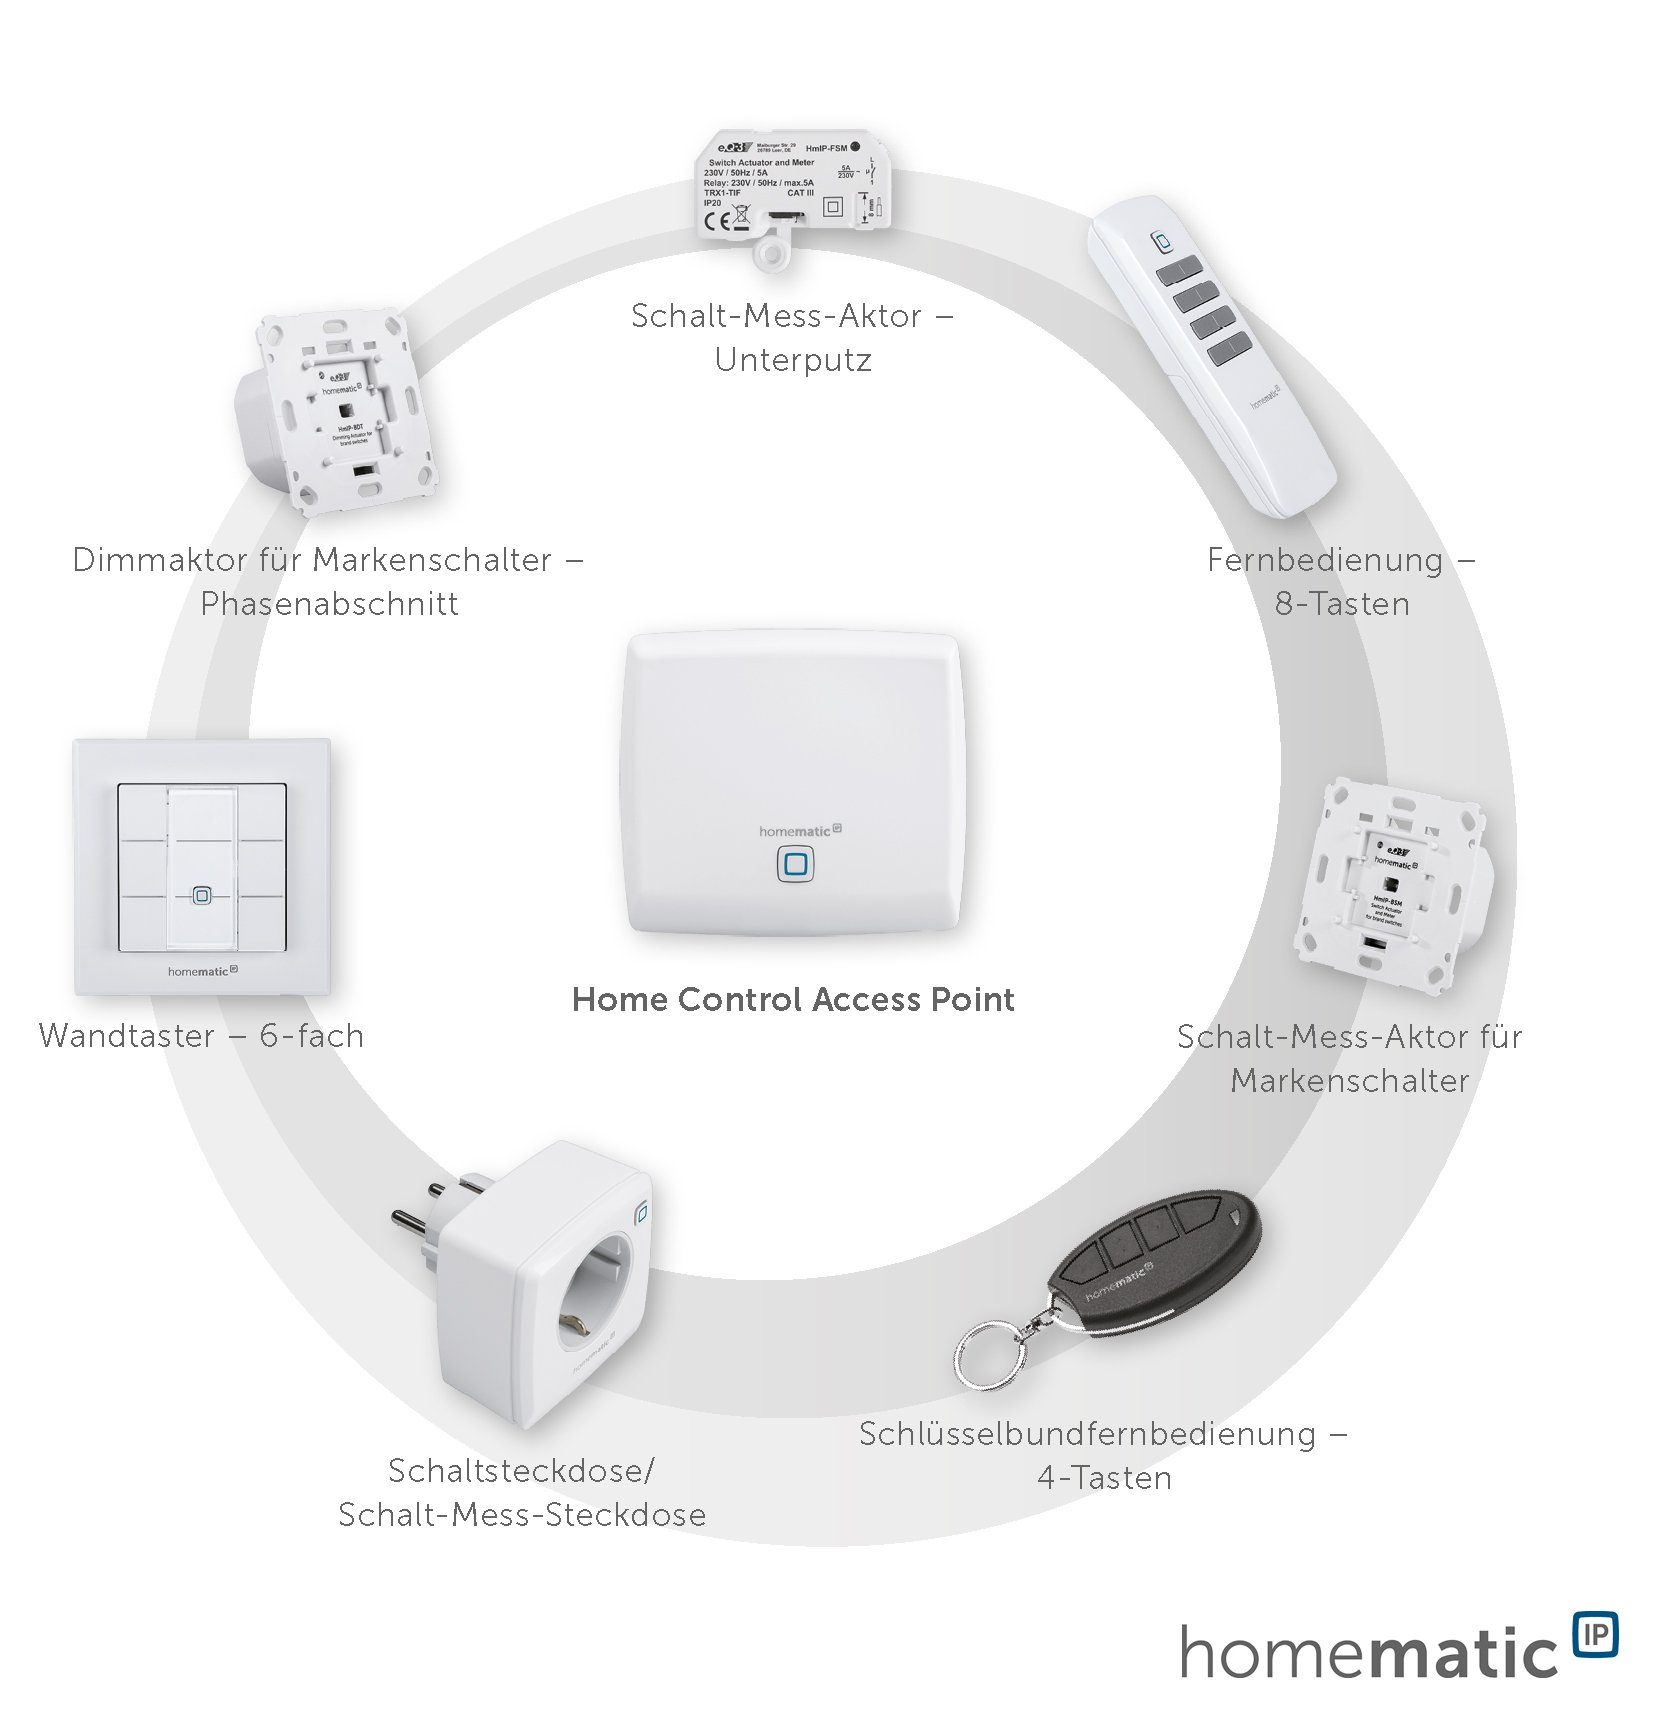 Homematic IP - Smart Home - Licht & Komfort »Schalt-Mess-Aktor für Markenschalter«